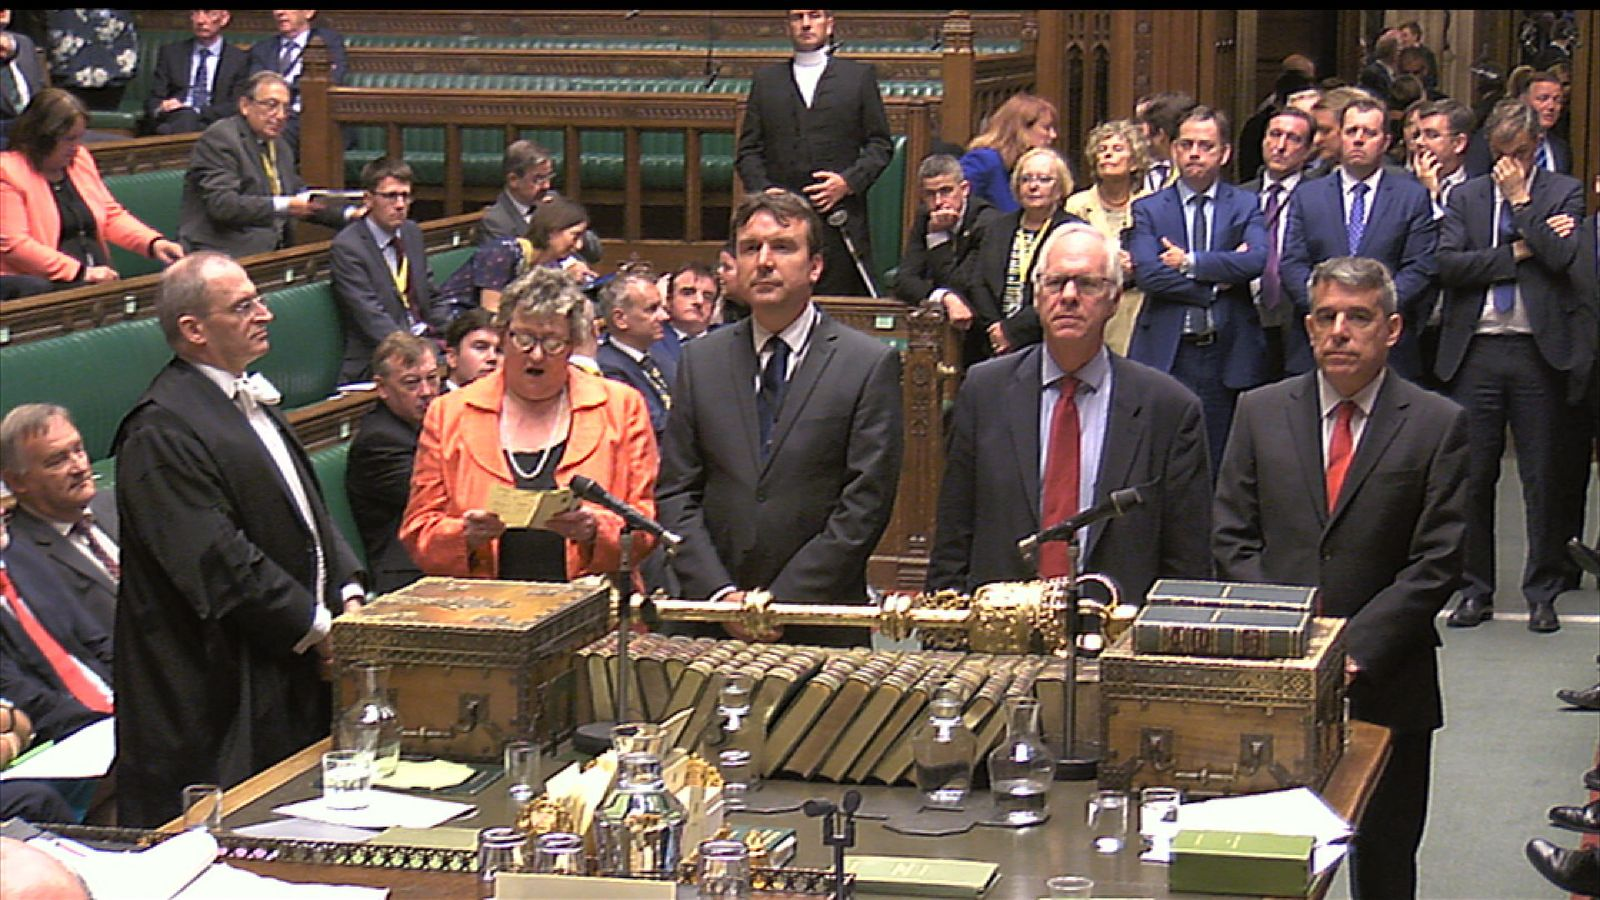 The Labour amendment to the Queen's Speech was defeated